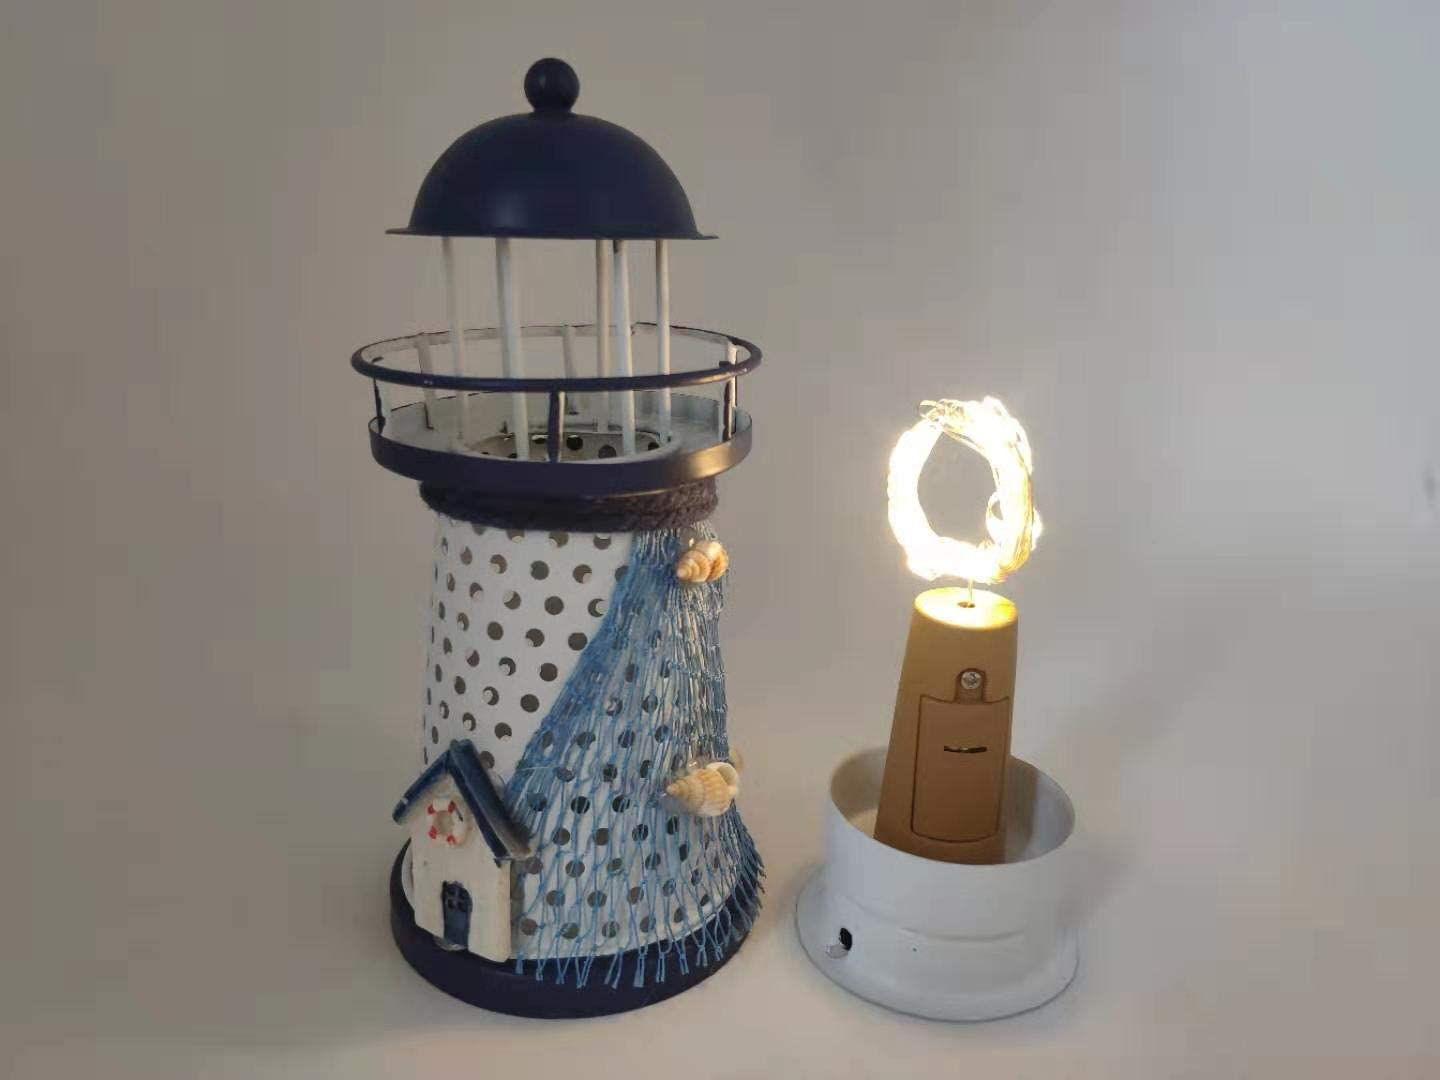 Lighthouse Decoration Mediterranean Style Flash Ocean Iron Crafts Iron Vintage Shell Fishing Net Home Accessories Modern Retro Wind Mini LED Lighthouse (Warm Color LED): Health & Personal Care